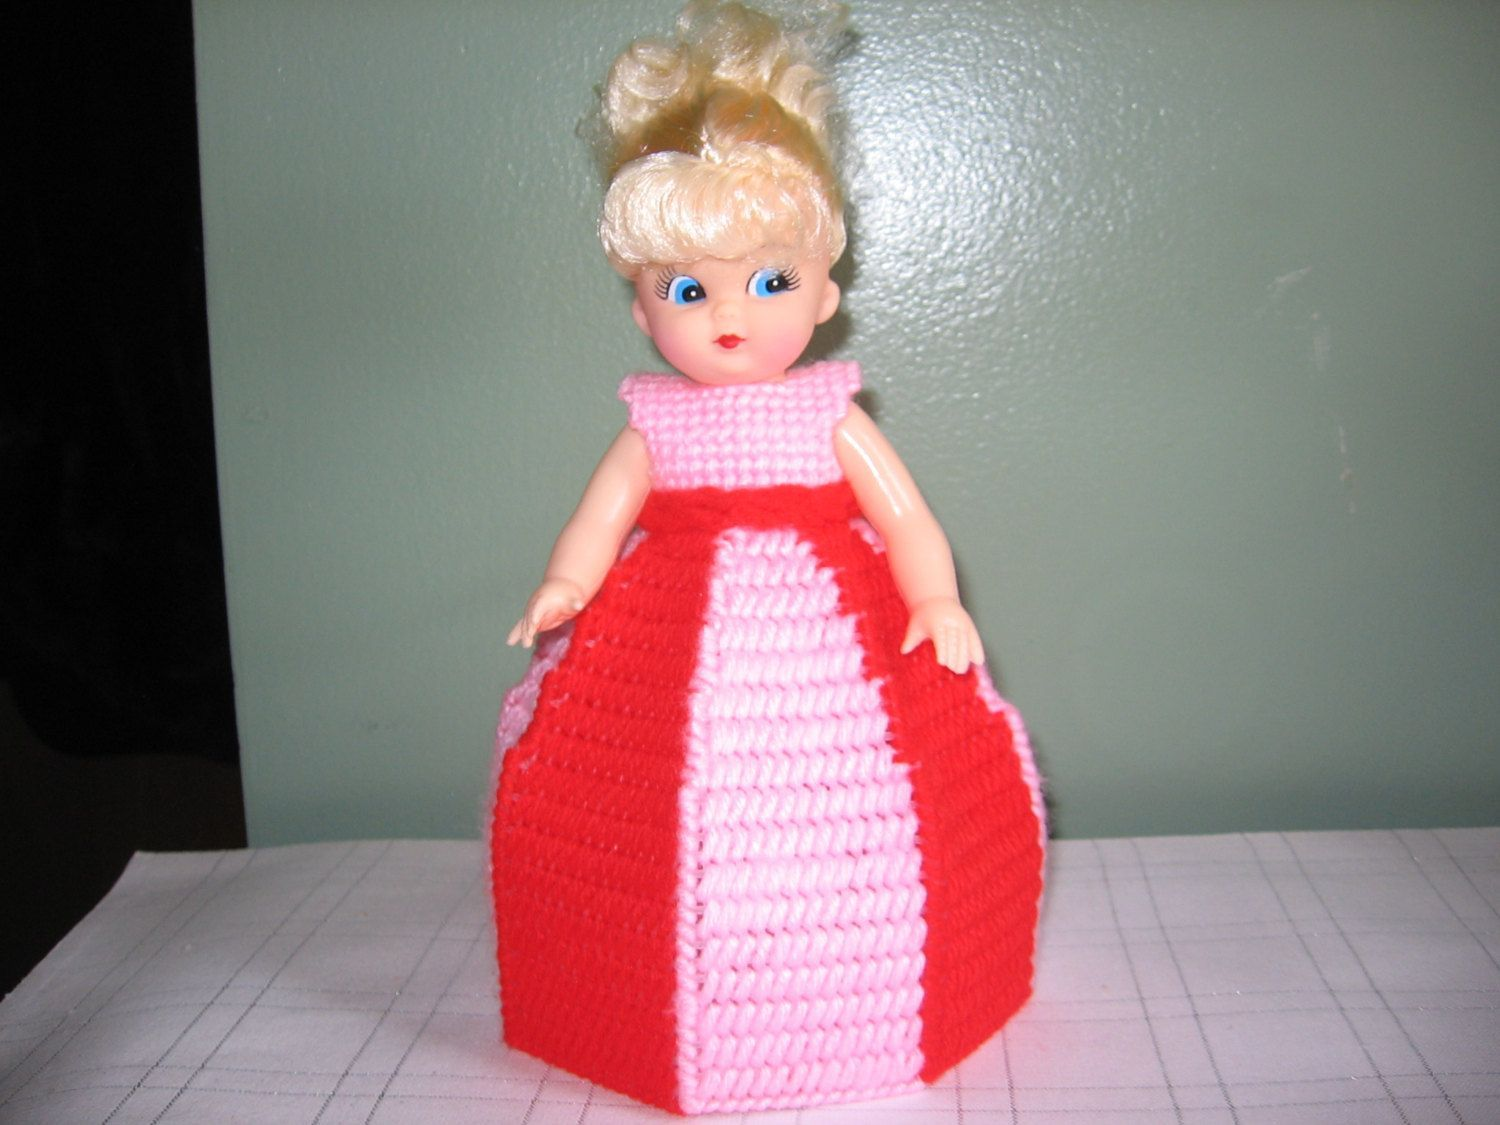 Red/Light Pink Collectible Doll - use for decoration or Air Freshner!! by CreationsbyAMJ on Etsy #airfreshnerdolls Red/Light Pink Collectible Doll - use for decoration or Air Freshner!! by CreationsbyAMJ on Etsy #airfreshnerdolls